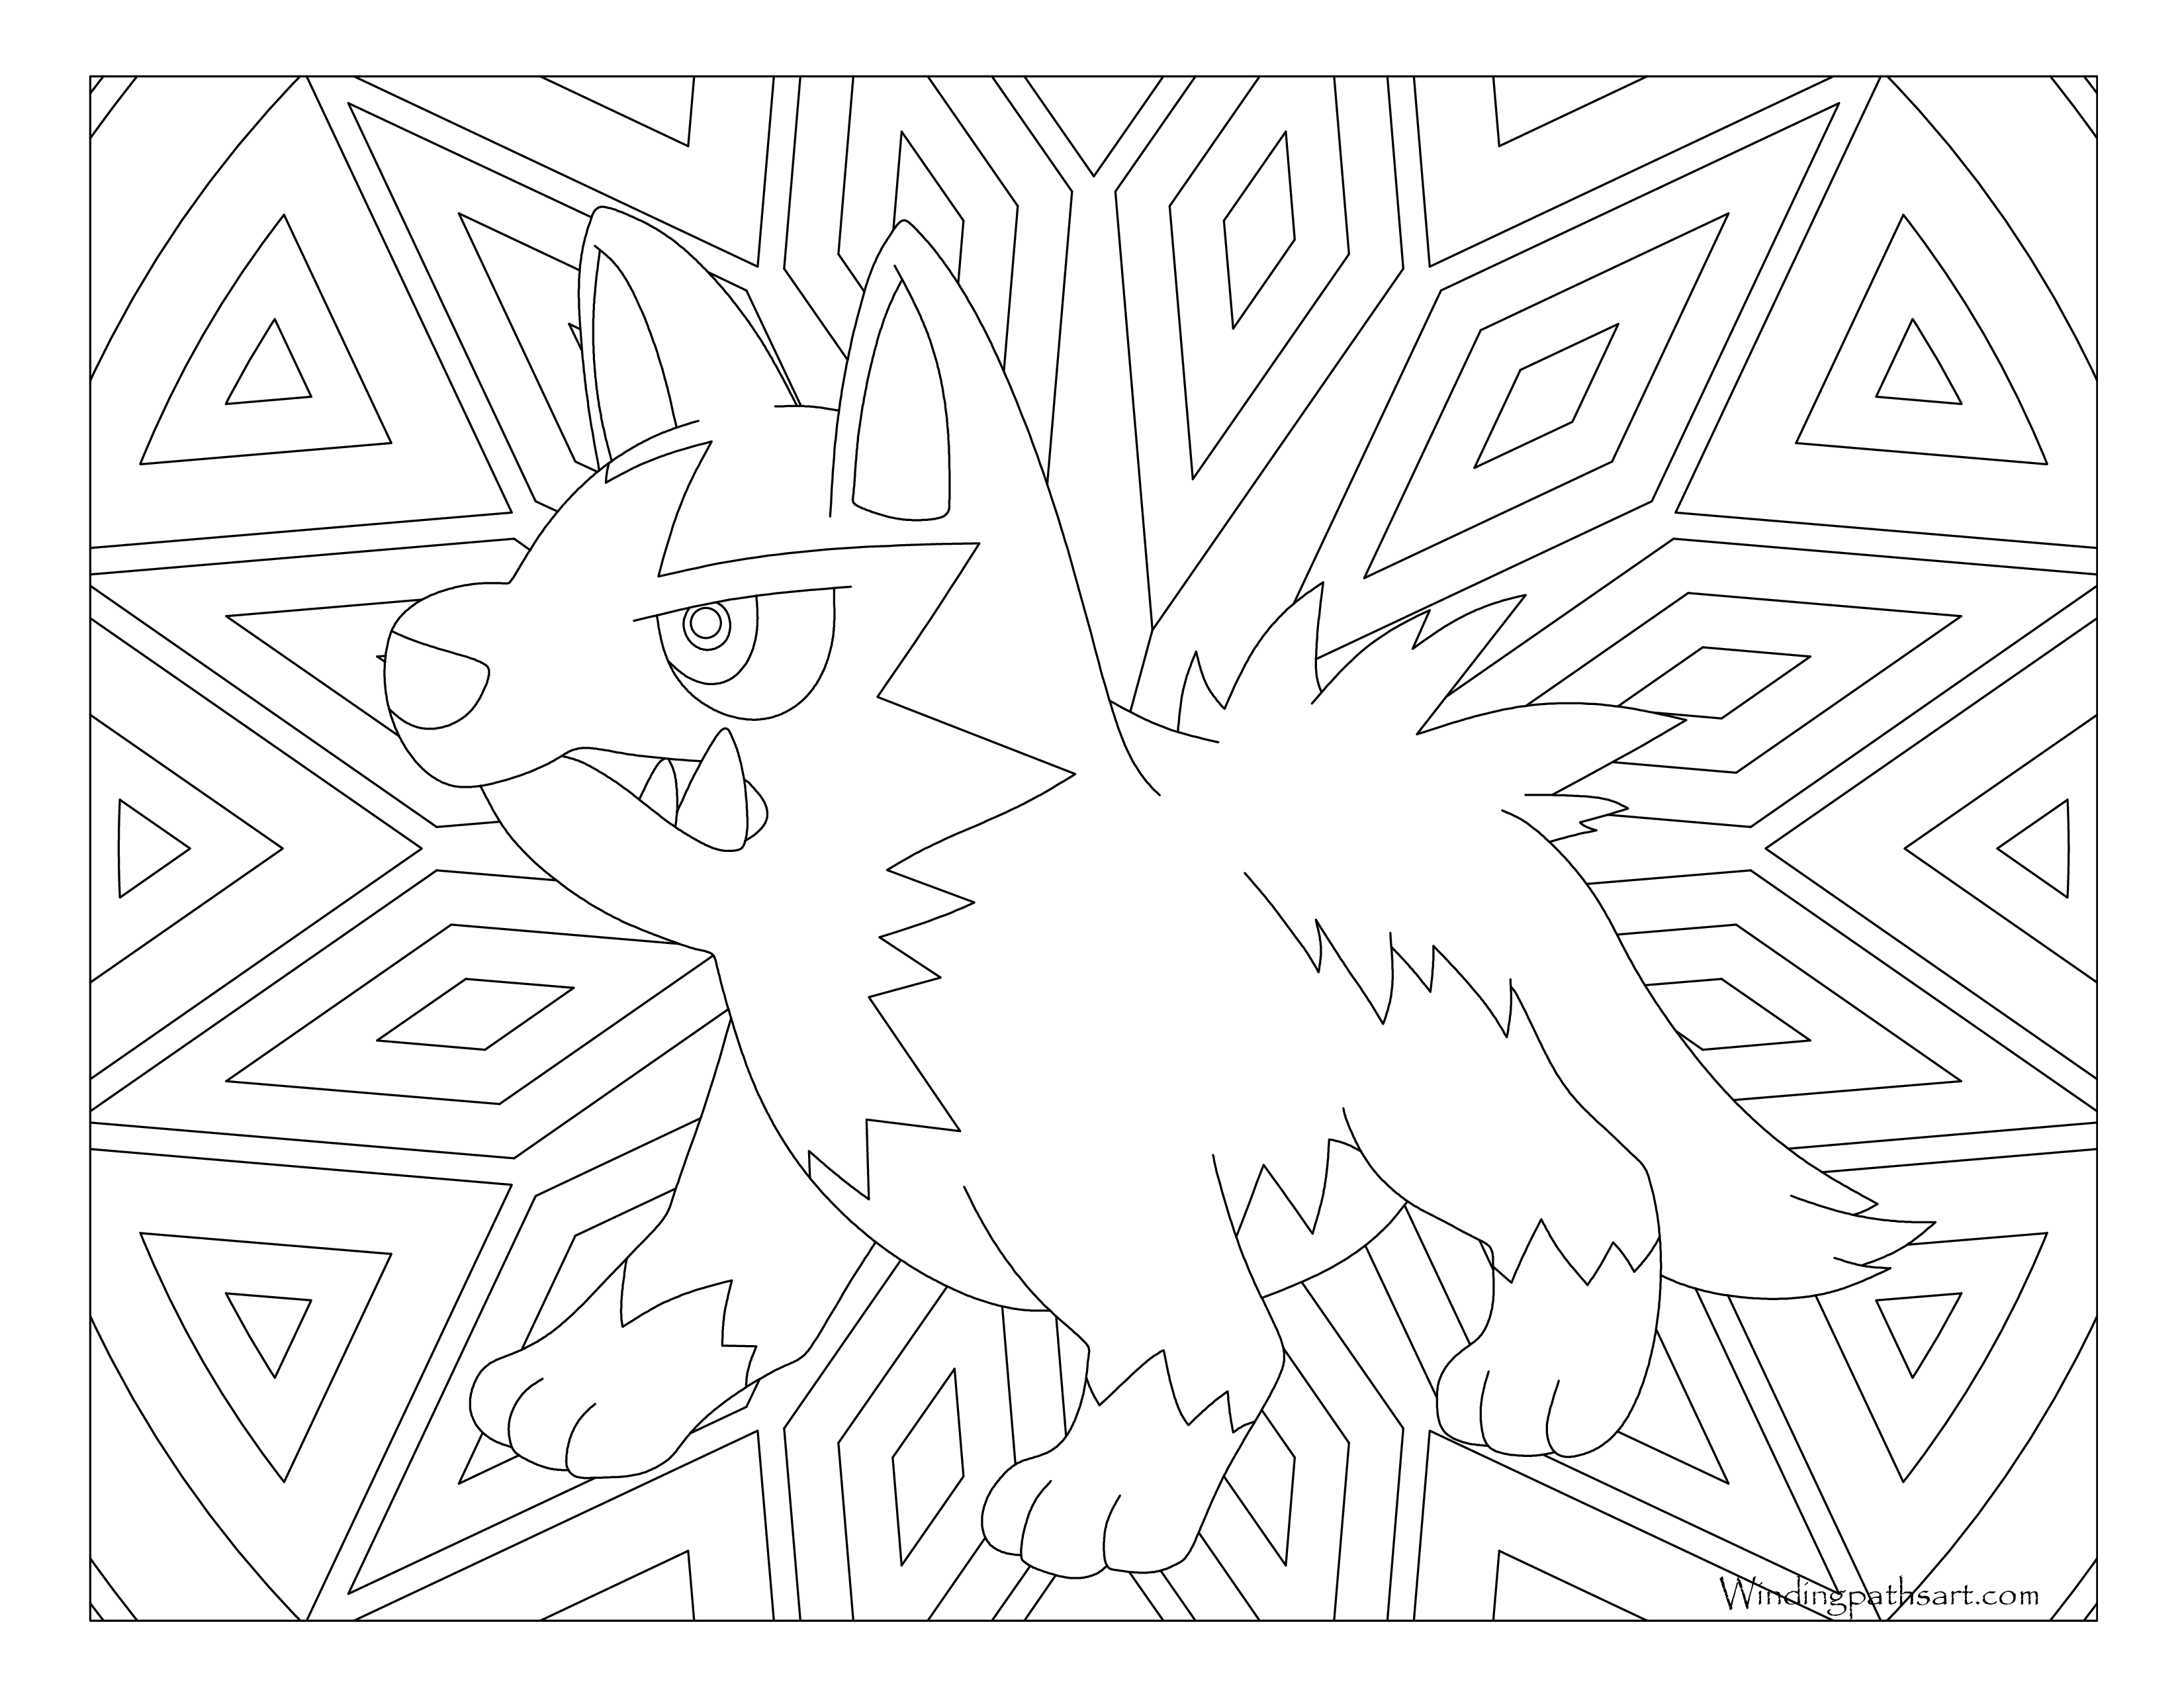 mightyena coloring pages - photo#38